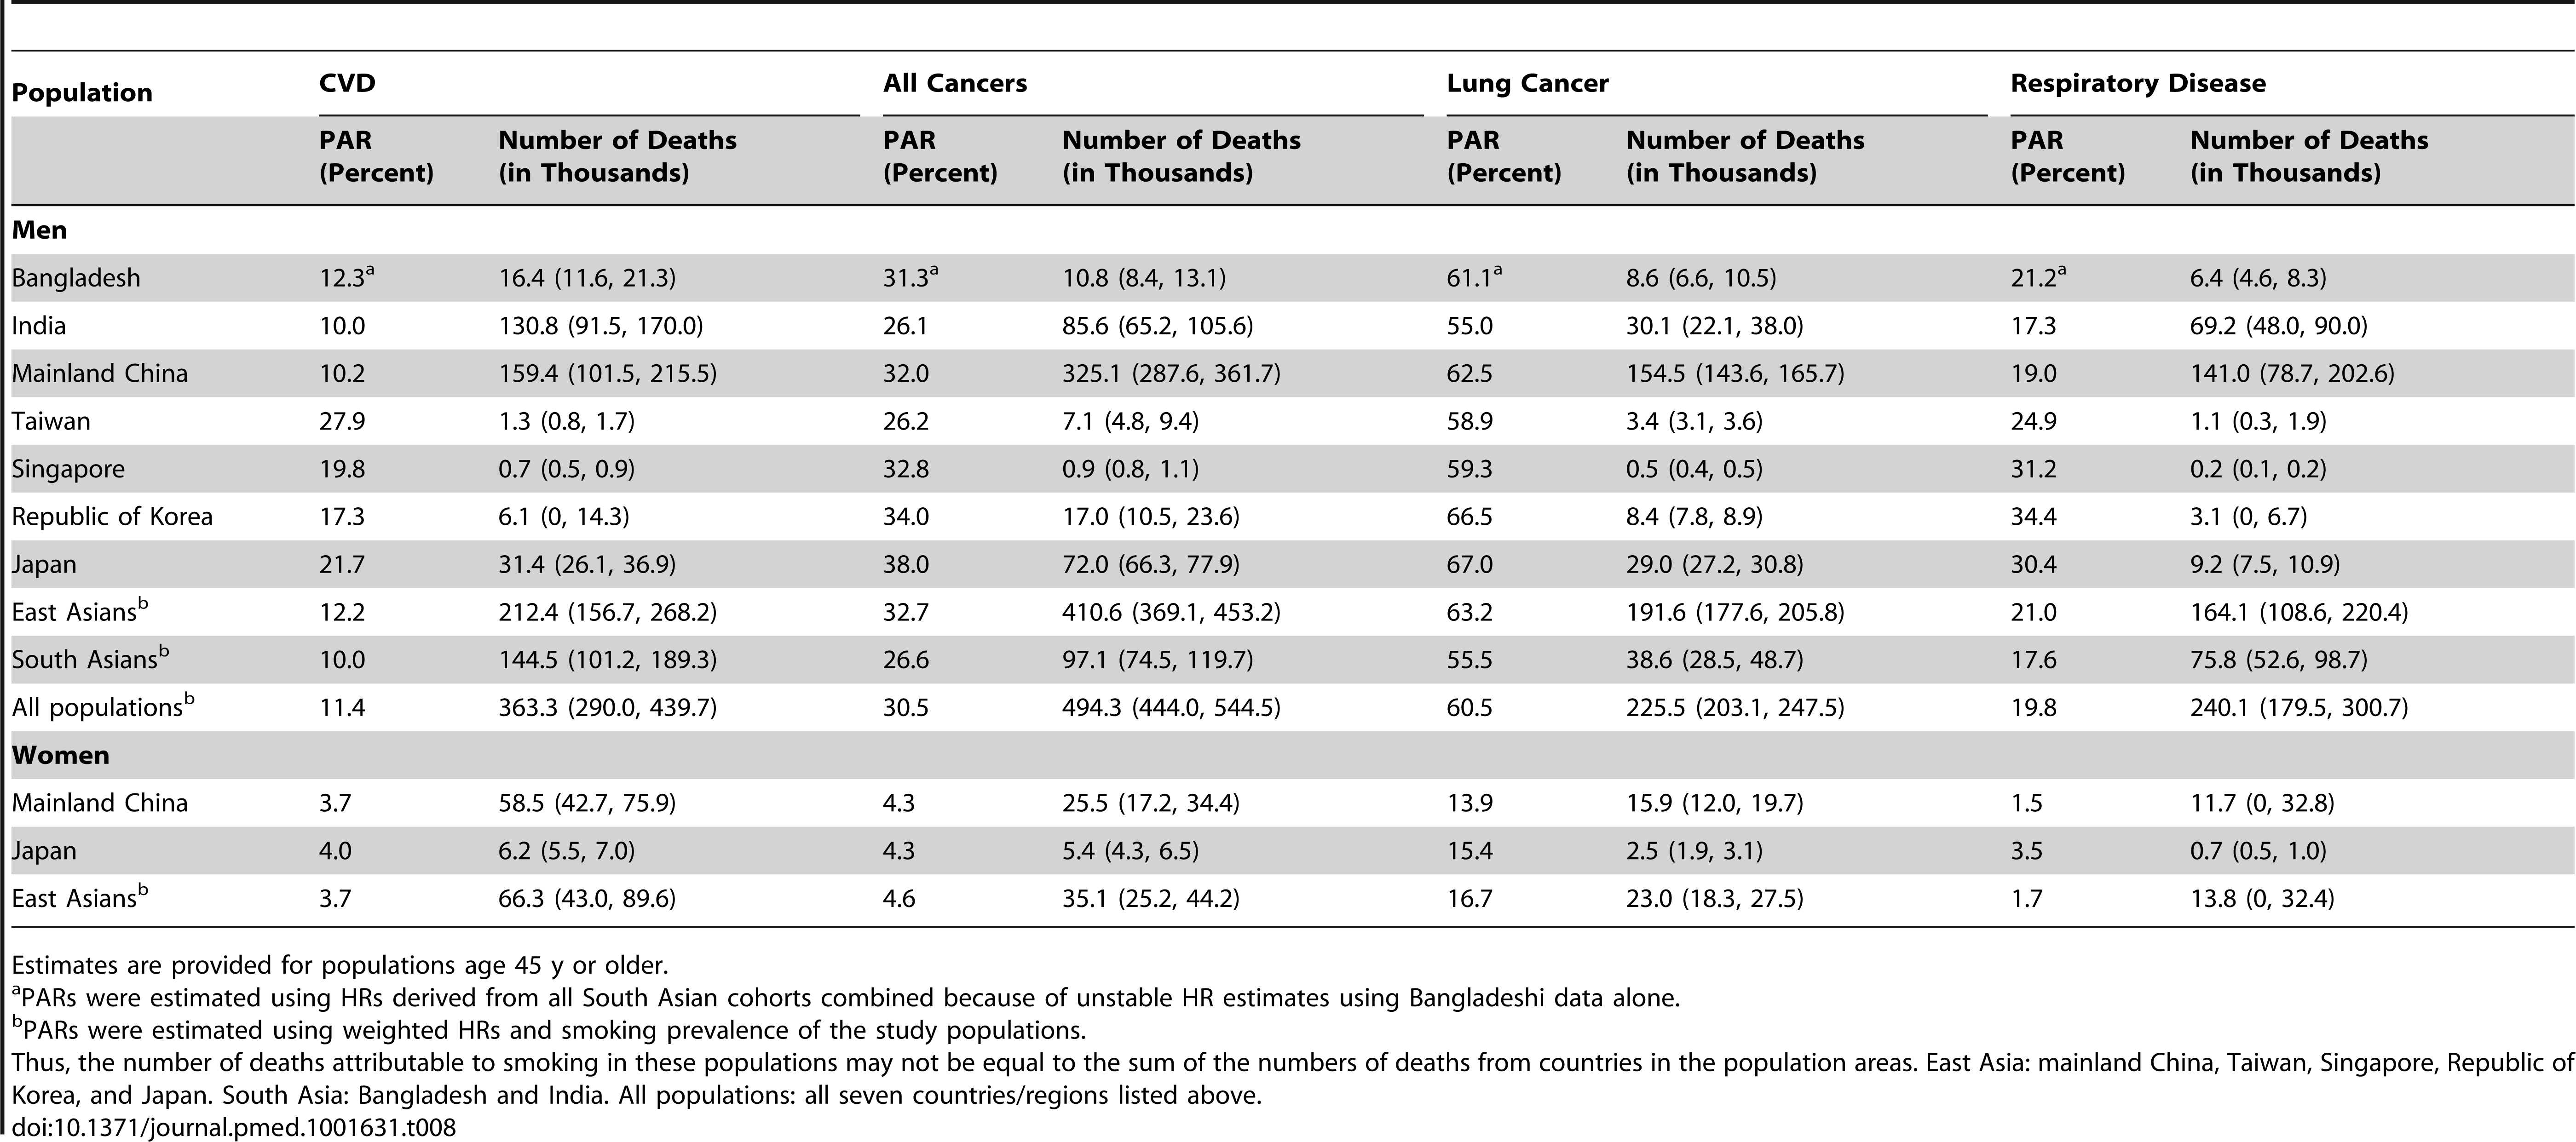 Population-attributable risk and number of cause-specific deaths due to tobacco smoking in selected Asian populations.